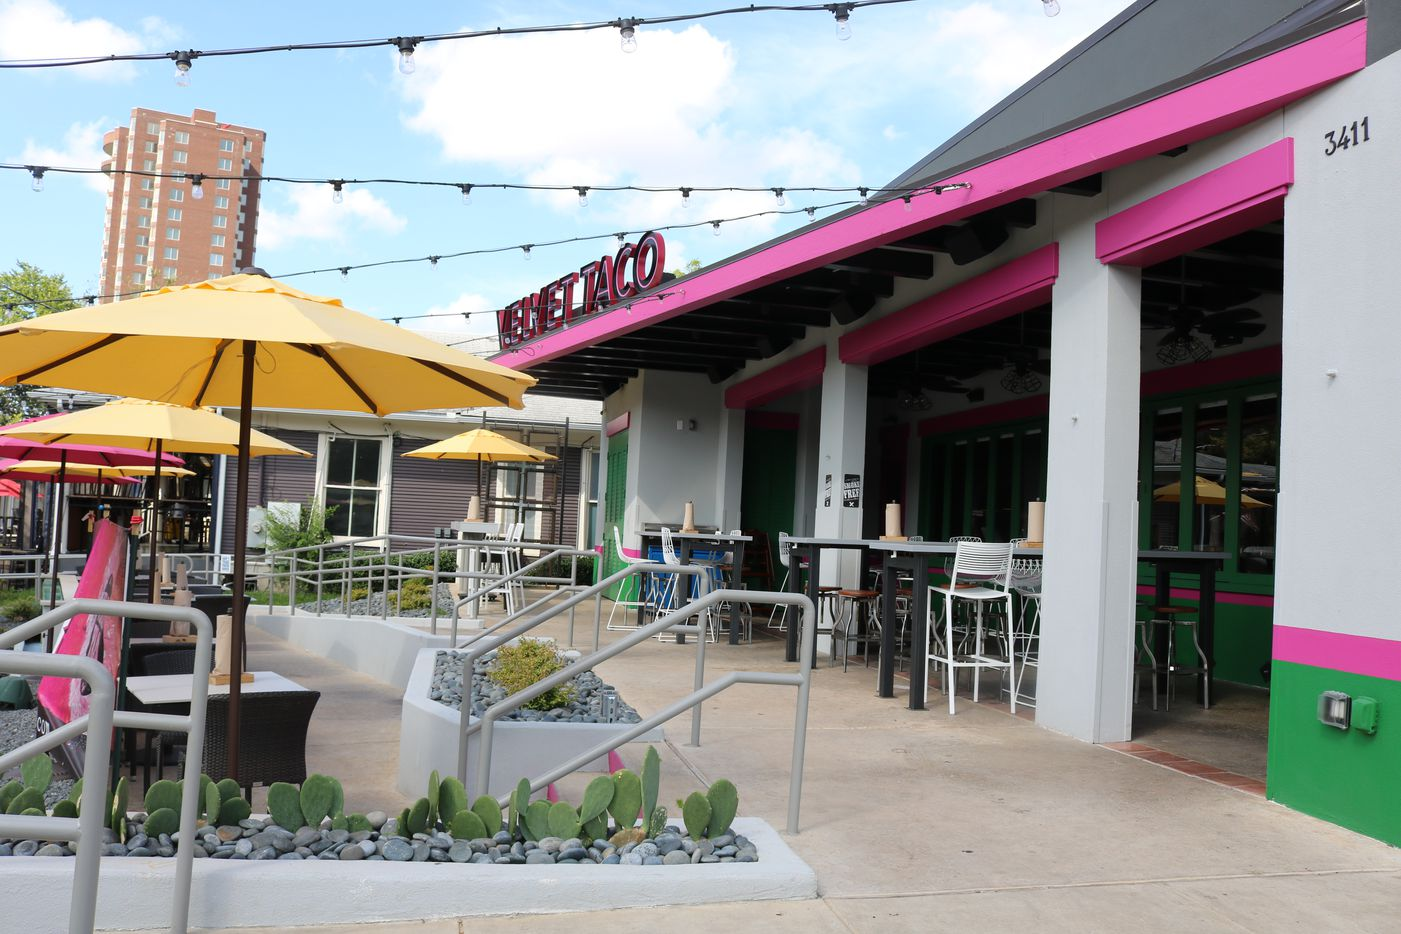 Velvet Taco has opened on McKinney Avenue in Uptown Dallas, in place of the former Urban Taco.